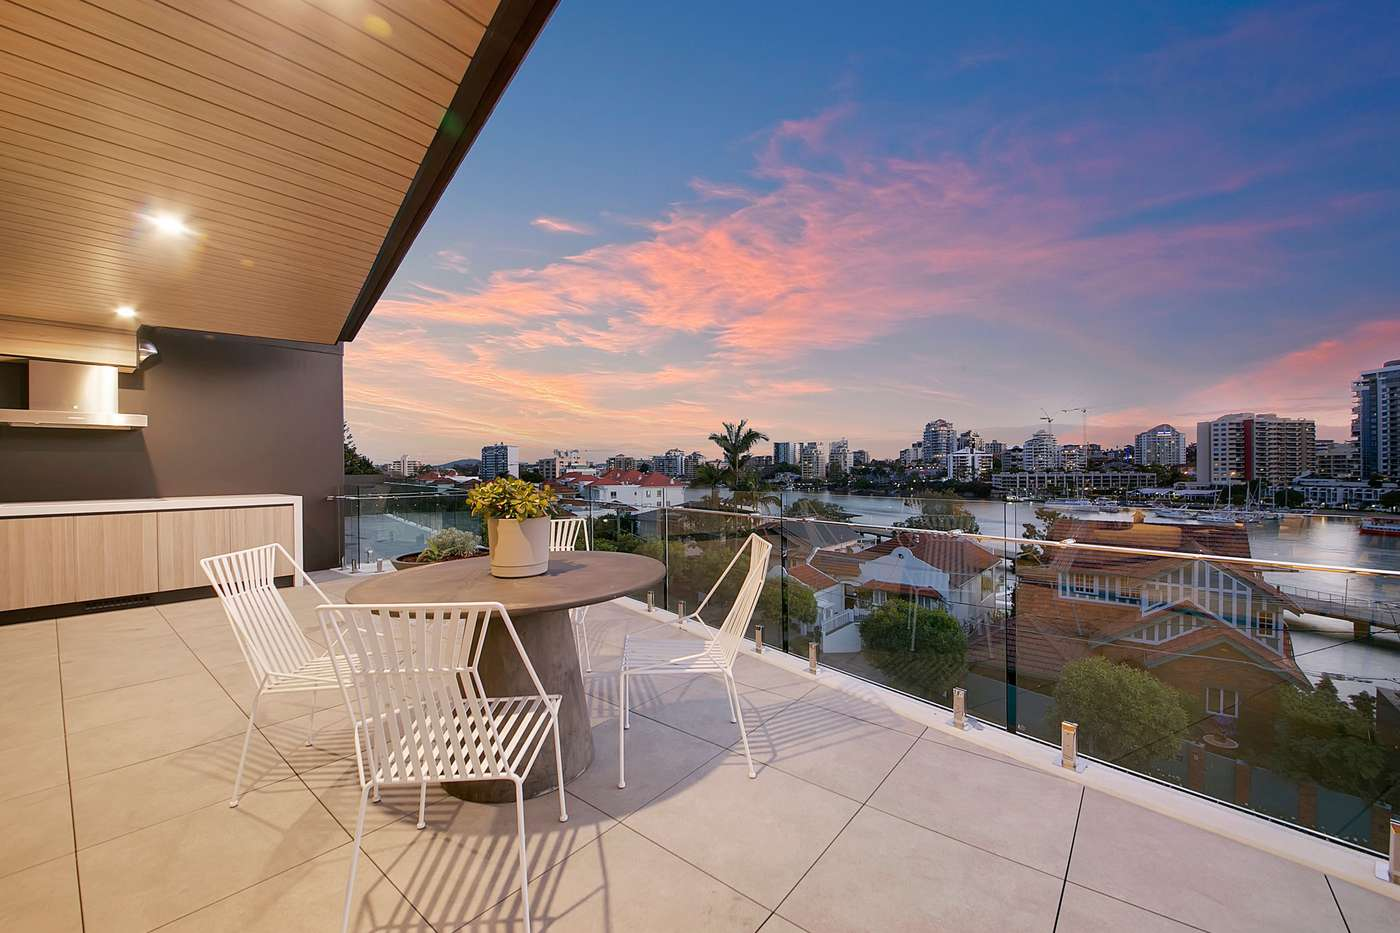 Main view of Homely apartment listing, 11/40 Maxwell Street, New Farm, QLD 4005